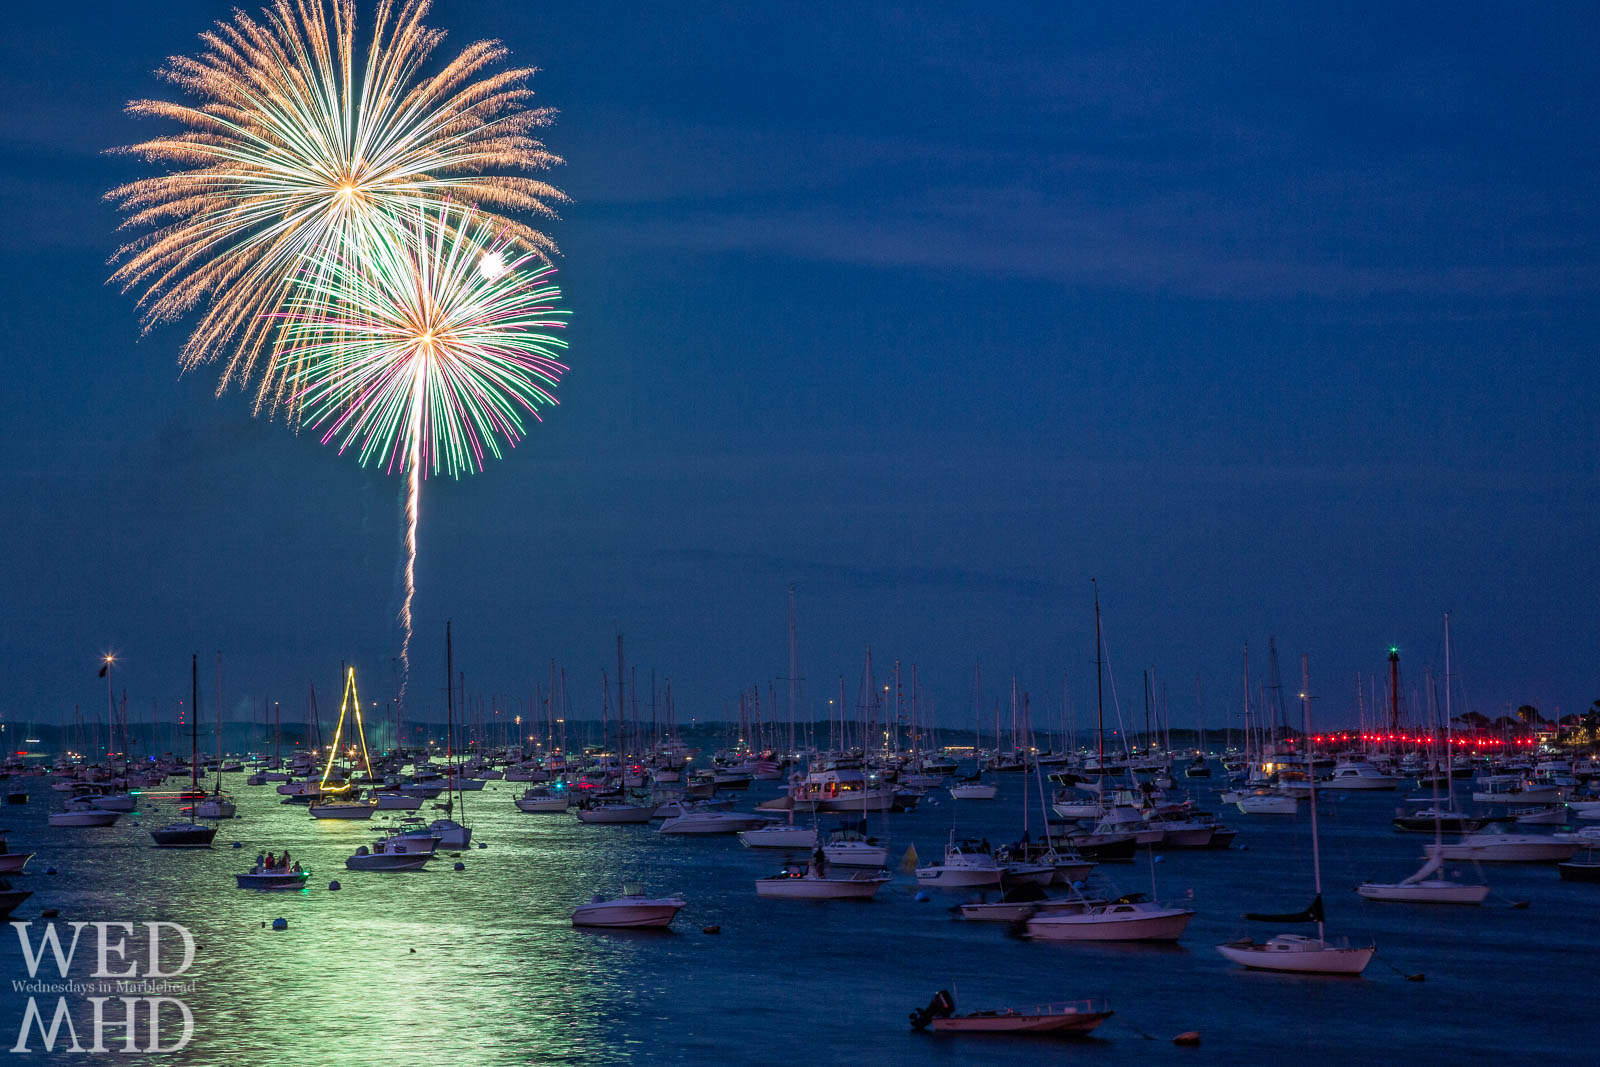 Two fireworks explode over Marblehead harbor with boats gathered underneath to watch the annual show